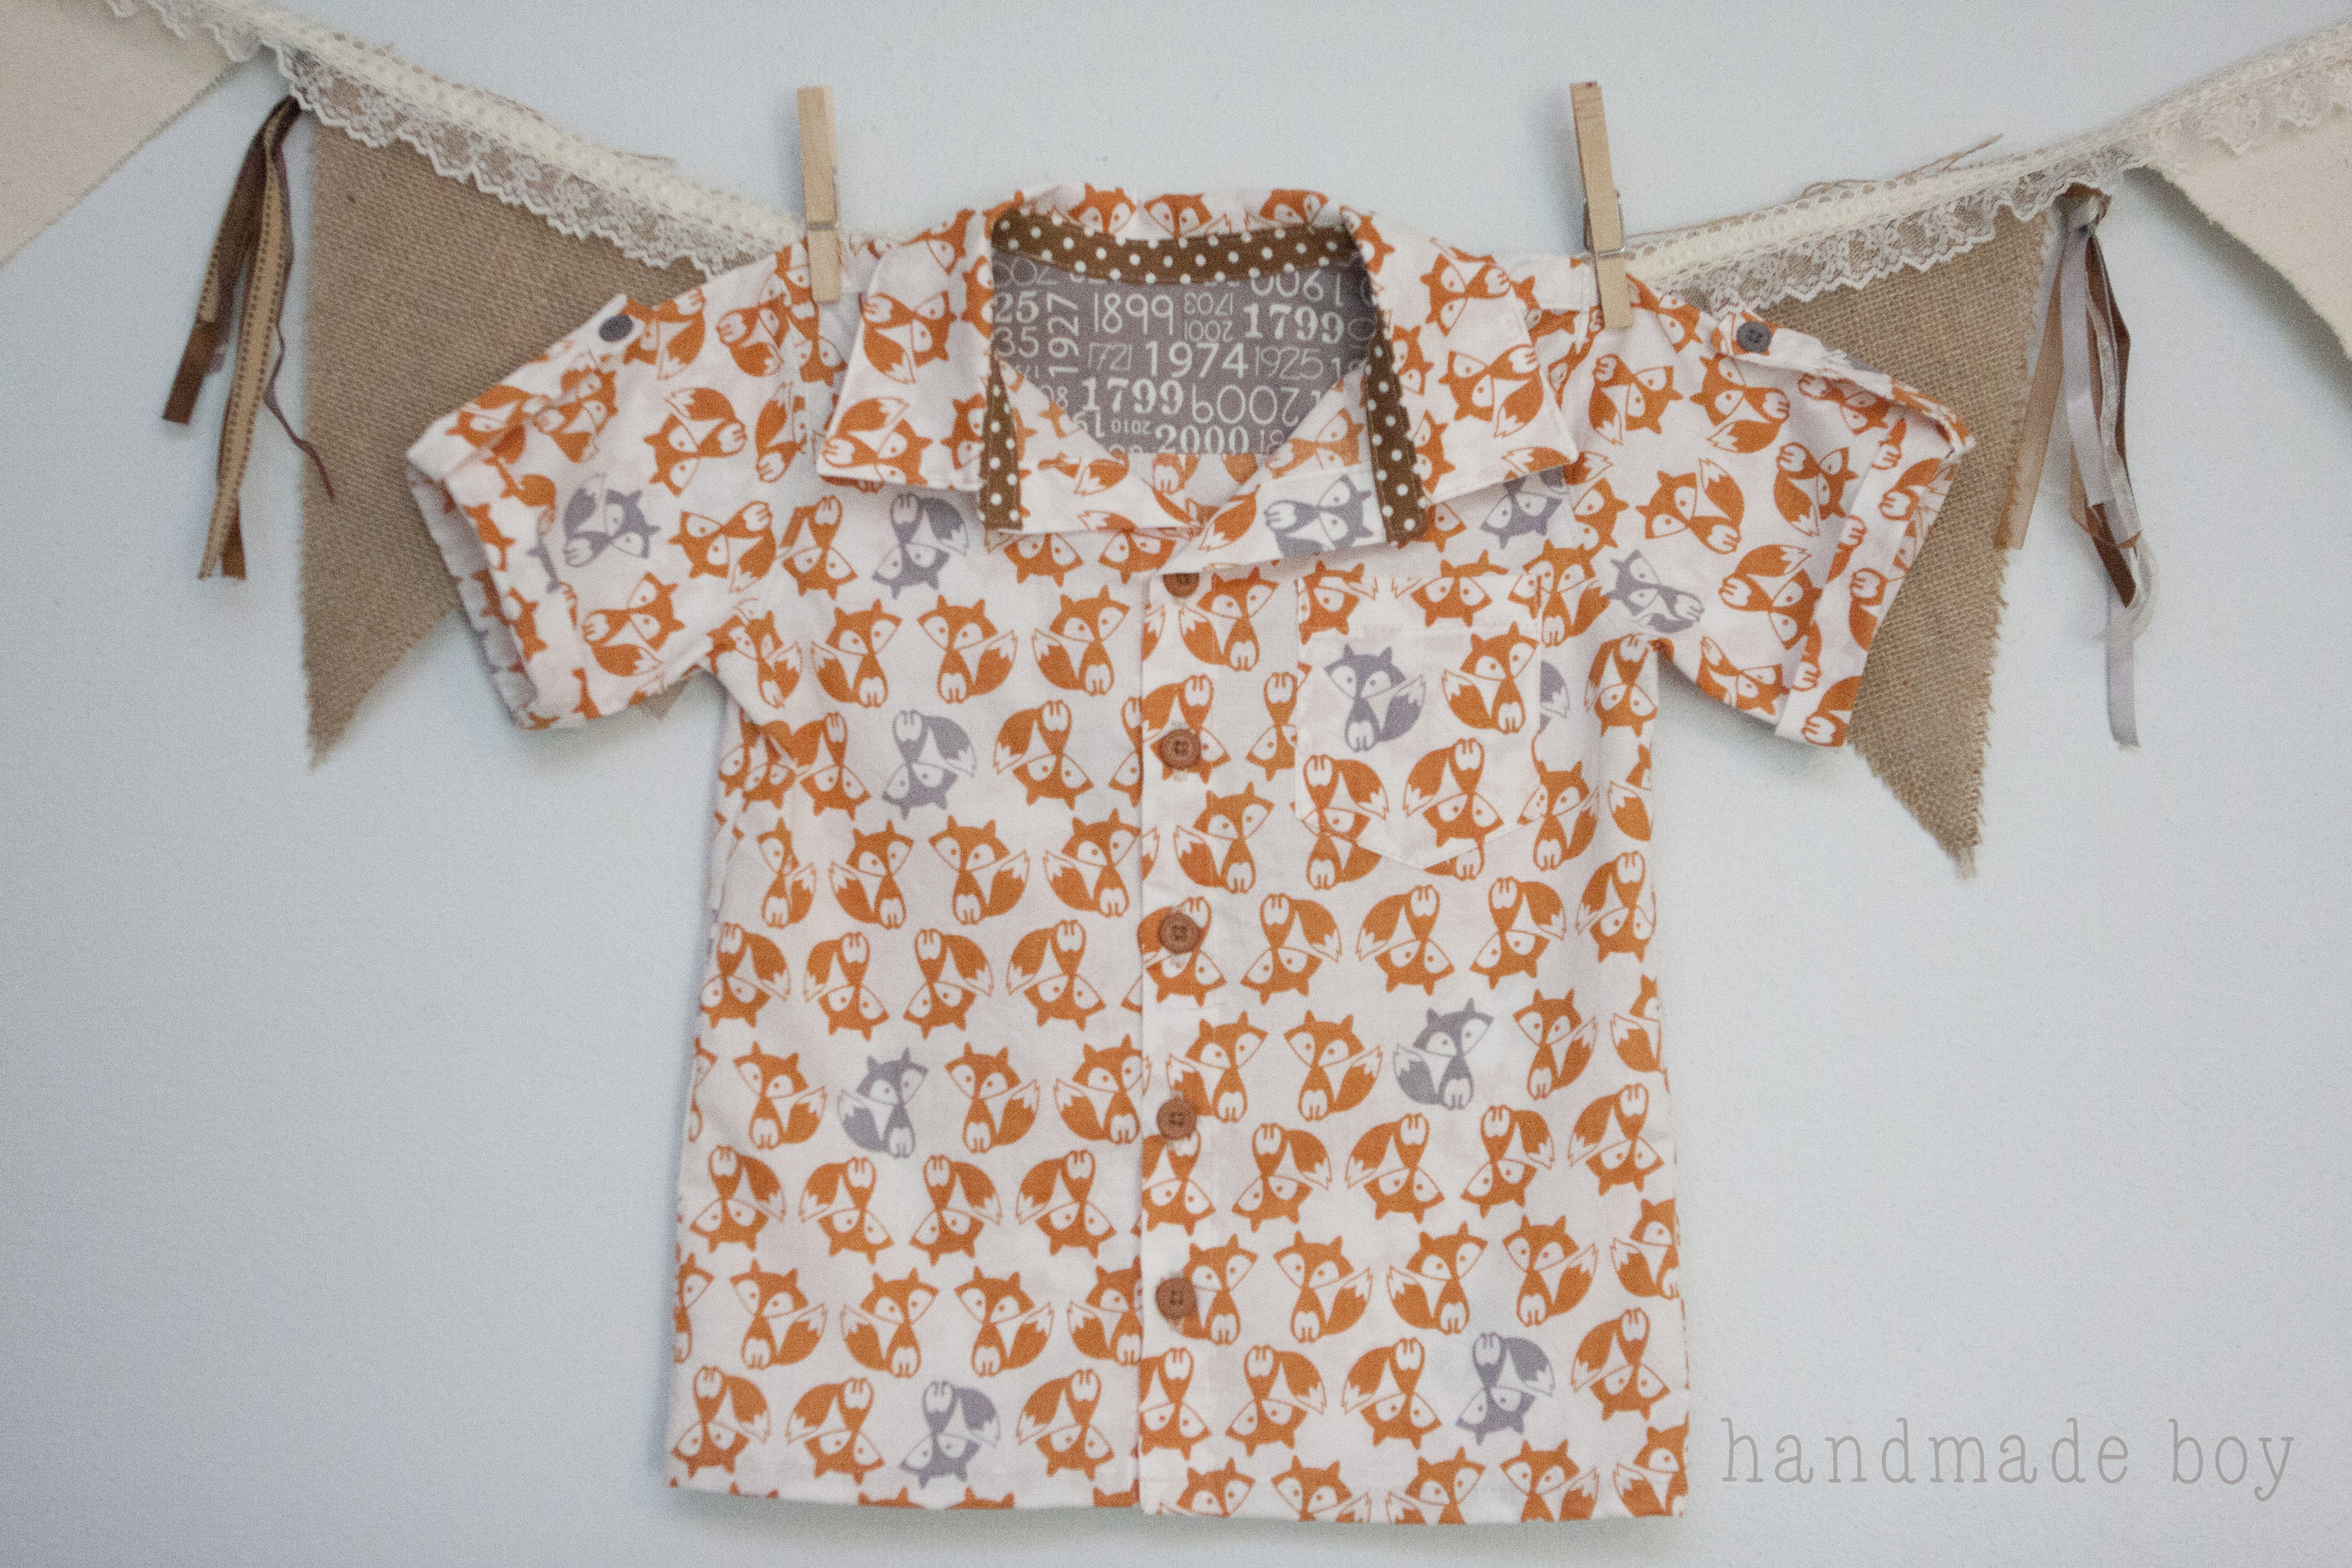 Classic oxford turned casual camp shirt with handmade boy peek a you have a very simple camp shirt like below jeuxipadfo Images